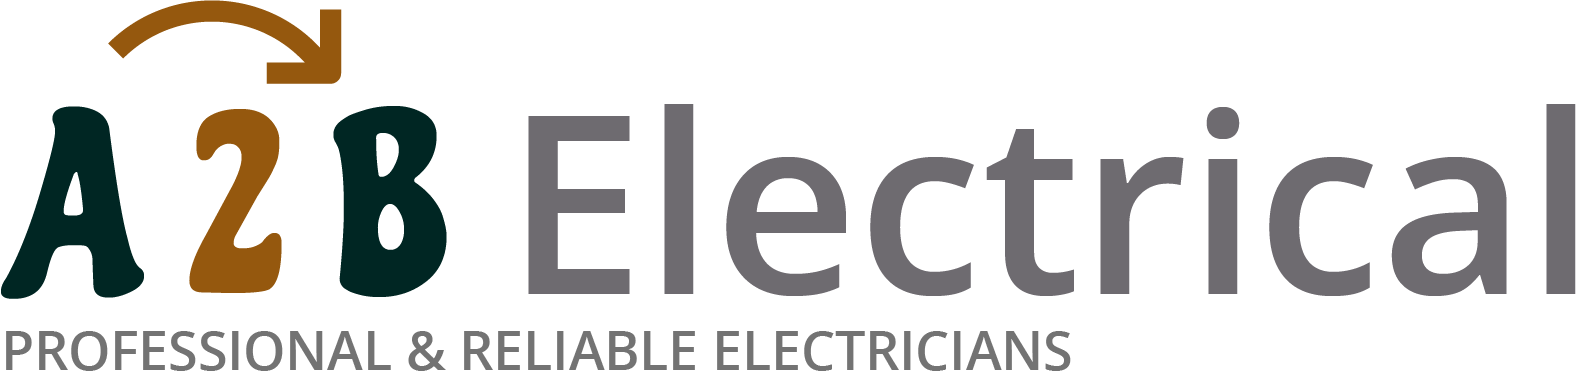 If you have electrical wiring problems in Canonbury, we can provide an electrician to have a look for you.